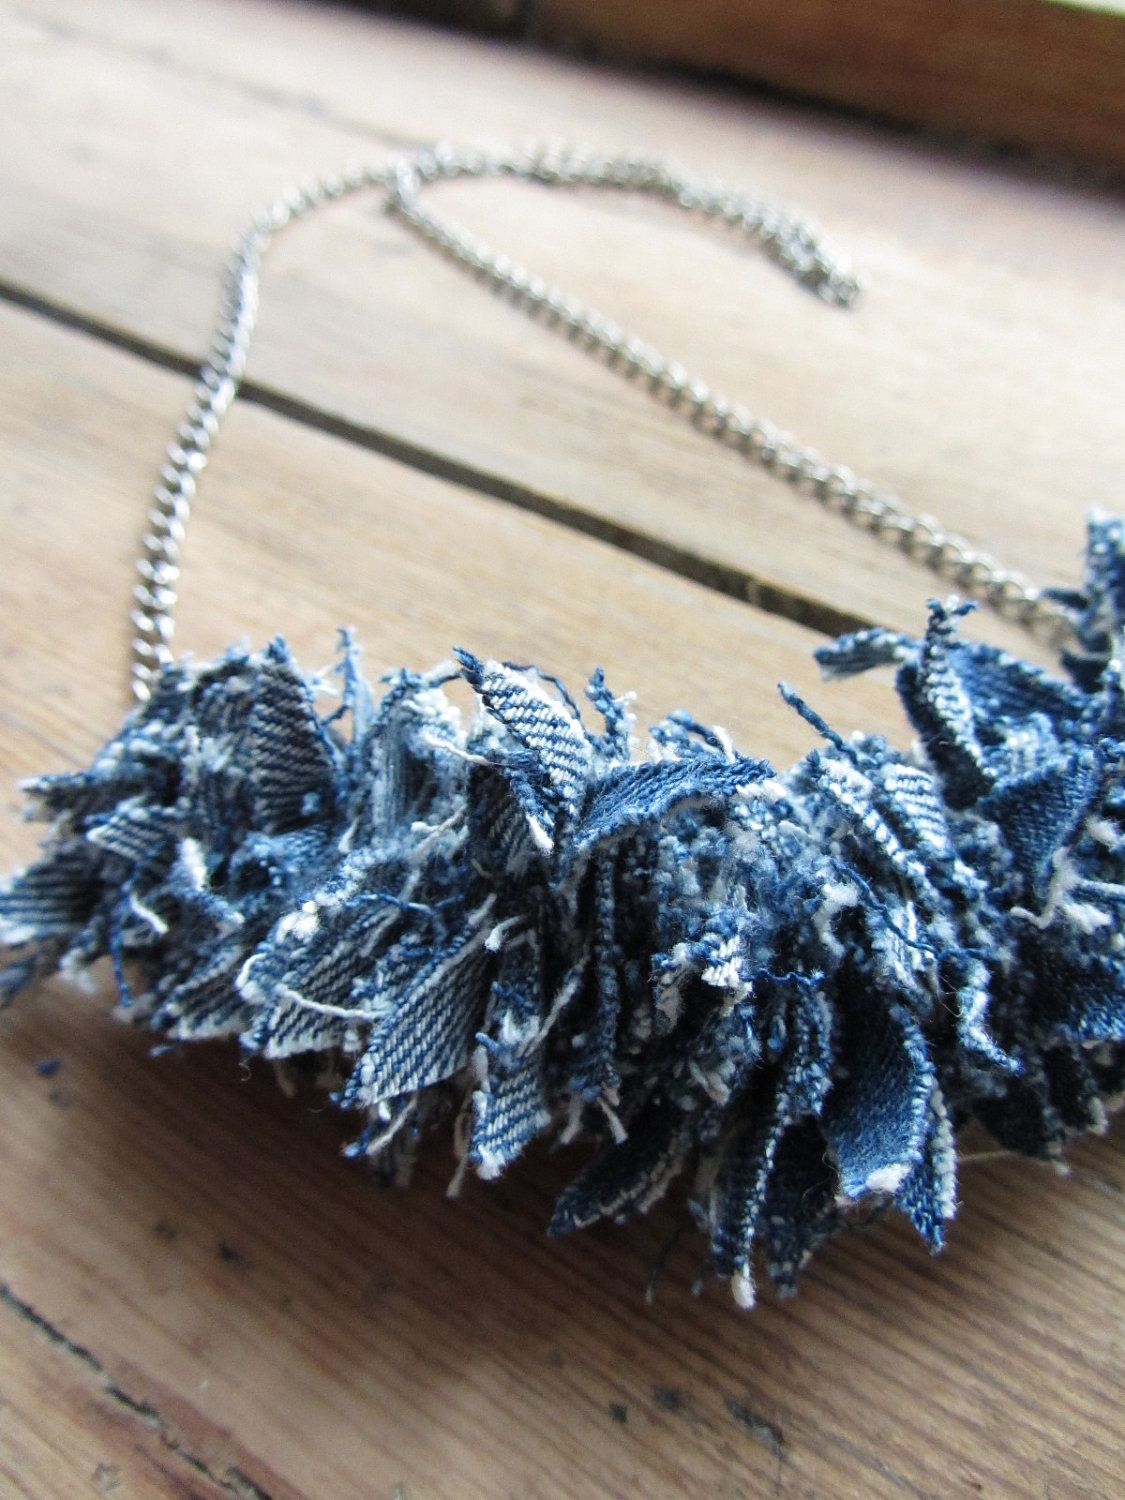 Upcycled denim necklace craftey craft pinterest for Jeans upcycling ideas